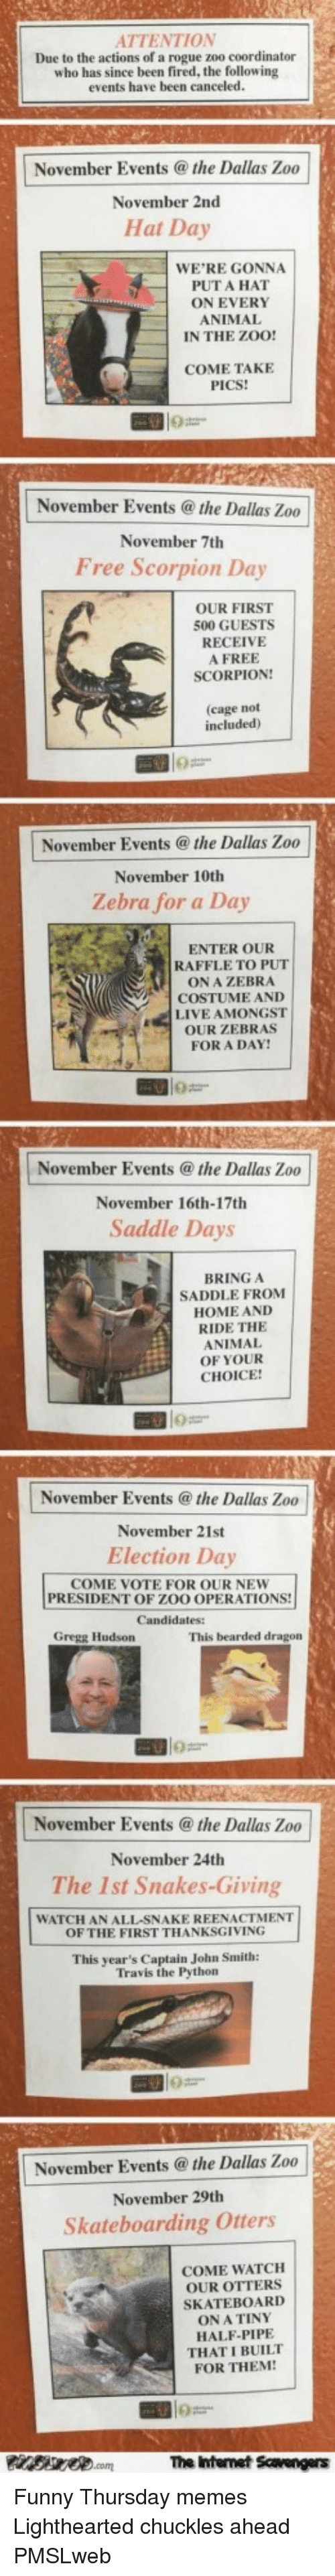 Funny, Memes, and Otters: ATTENTION  Due to the actions of a rogue zoo coordinator  who has since been fired, the following  events have been canceled.  November Events @ the Dallas Zoo  November 2nd  Hat Day  WE'RE GONNA  PUT A HAT  ON EVERY  ANIMAL  IN THE ZOO!  COME TAKE  PICS!  November Events @the Dallas Zoo  November 7th  Free Scorpion Day  OUR FIRST  500 GUESTS  RECEIVE  A FREE  SCORPION!  (cage not  included)  November Events @the Dallas Zoo  November 10th  Zebra for a Day  ENTER OUR  RAFFLE TO PUT  ON A ZEBRA  COSTUME AND  LIVE AMONGST  OUR ZEBRAS  FOR A DAY  November Events @the Dallas Zoo  November 16th-17th  Saddle Days  BRING A  SADDLE FROM  HOME AND  RIDE THE  ANIMAL  OF YOUR  CHOICE  November Events@ the Dallas Zoo  November 21st  Election Day  COME VOTE FOR OUR NEW  PRESIDENT OF ZOO OPERATIONS!  Gregg Hudson  This bearded dragon  November Events @the Dallas Zoo  November 24th  The 1st Snakes-Giving  WATCH AN ALL-SNAKE REENACTMENT  OF THE FIRST THANKSGIVING  This year's Captain John Smith:  Travis the Python  November Eventsthe Dallas Zoo  November 29th  Skateboarding Otters  COME WATCH  OUR OTTERS  SKATEBOARD  ON A TINY  HALF-PIPE  THAT I BUILT  FOR THEM  The Intenet Scavengers <p>Funny Thursday memes  Lighthearted chuckles ahead  PMSLweb </p>